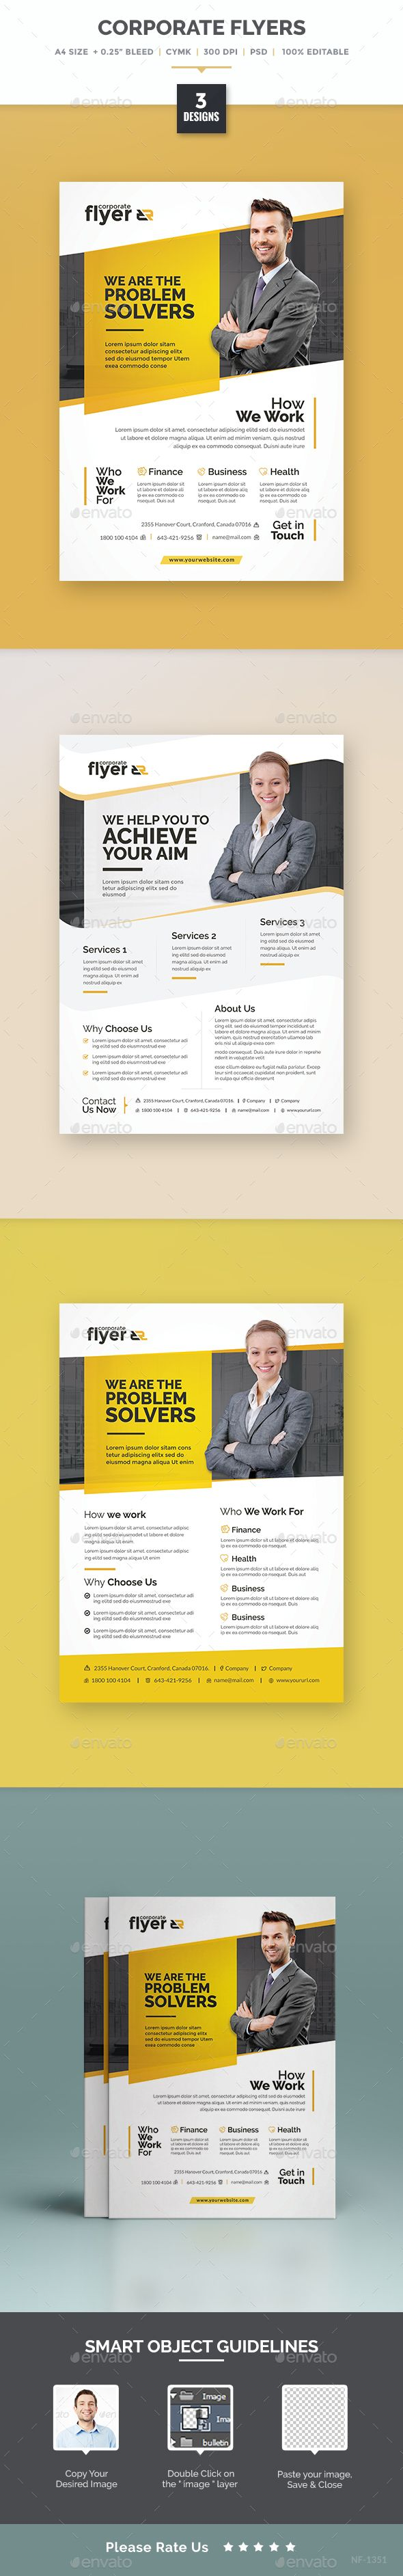 ideas about flyer template flyer design corporate flyer designs